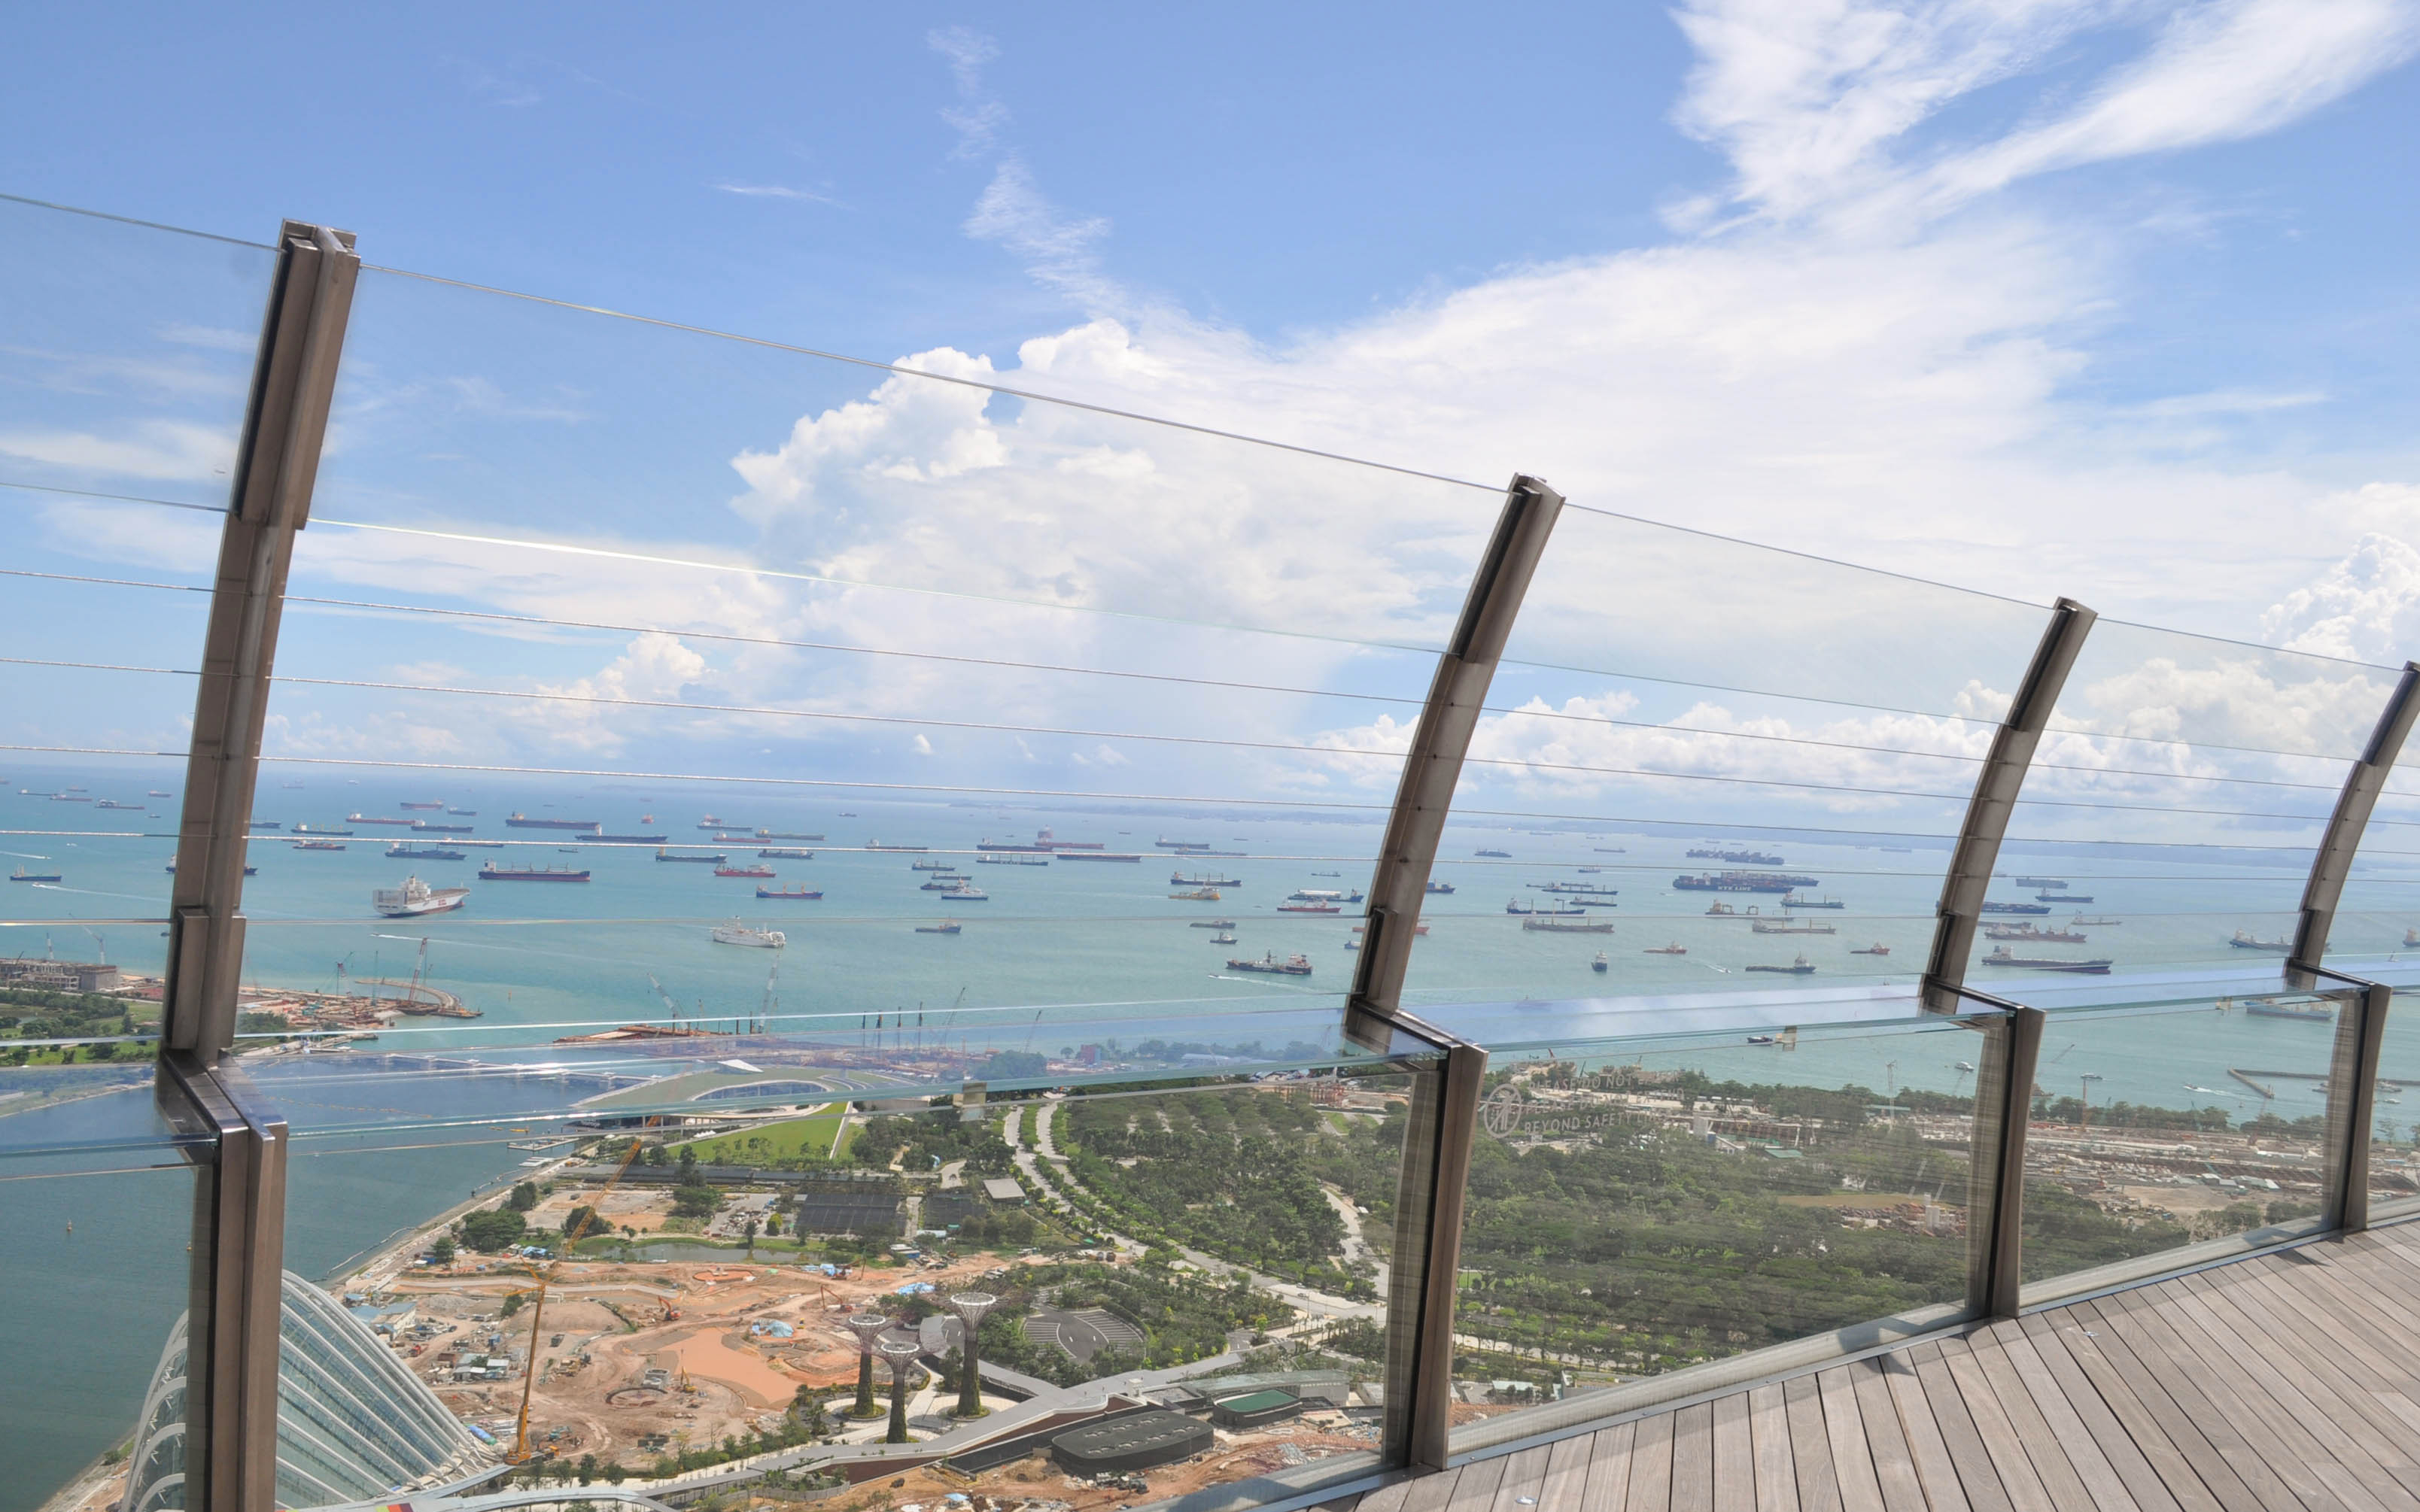 5493e562 605f 4b65 85af 2536d65b8136 7371 singapore marina bay sands skypark sightseeing experience 04